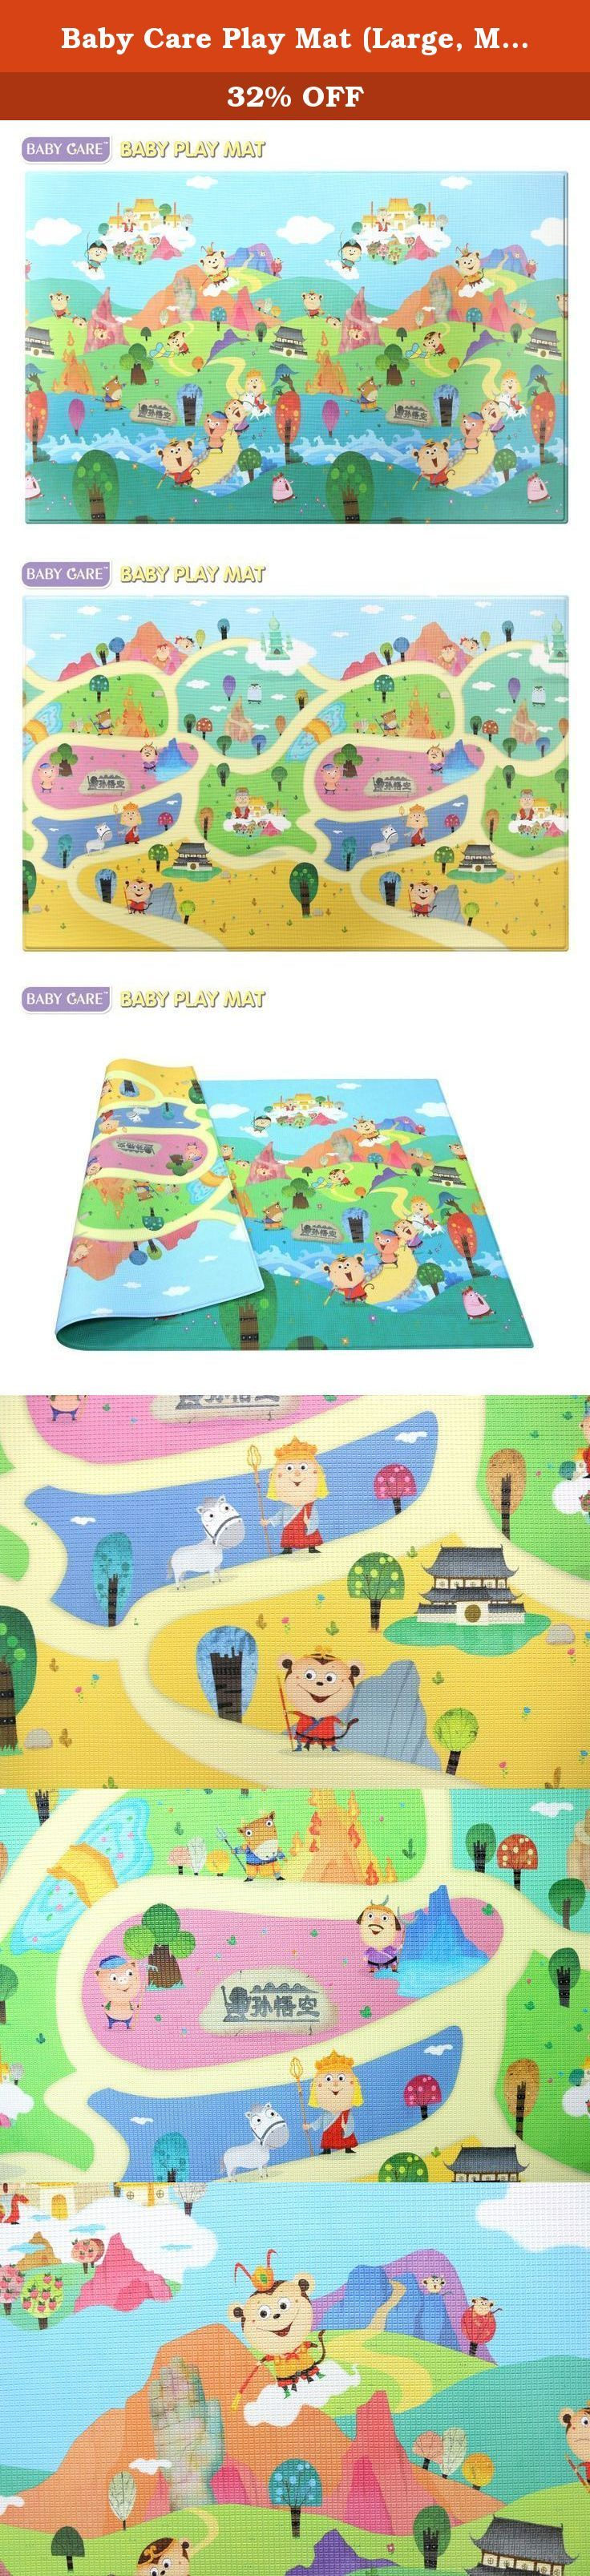 Baby Care Play Mat (Large, MonkeyKing). Developed specifically for growing babies and children, BABYCARE Baby Play Mat provides hygienic and safe floor space for the family with small ones. Babies and children can play safely on the floor, with stimulating and vibrant colors, characters, and educational elements like letters and numbers. This Play Mat is an essential item for the safe growth and development of your baby and toddler. It protects children from hard floor surfaces…